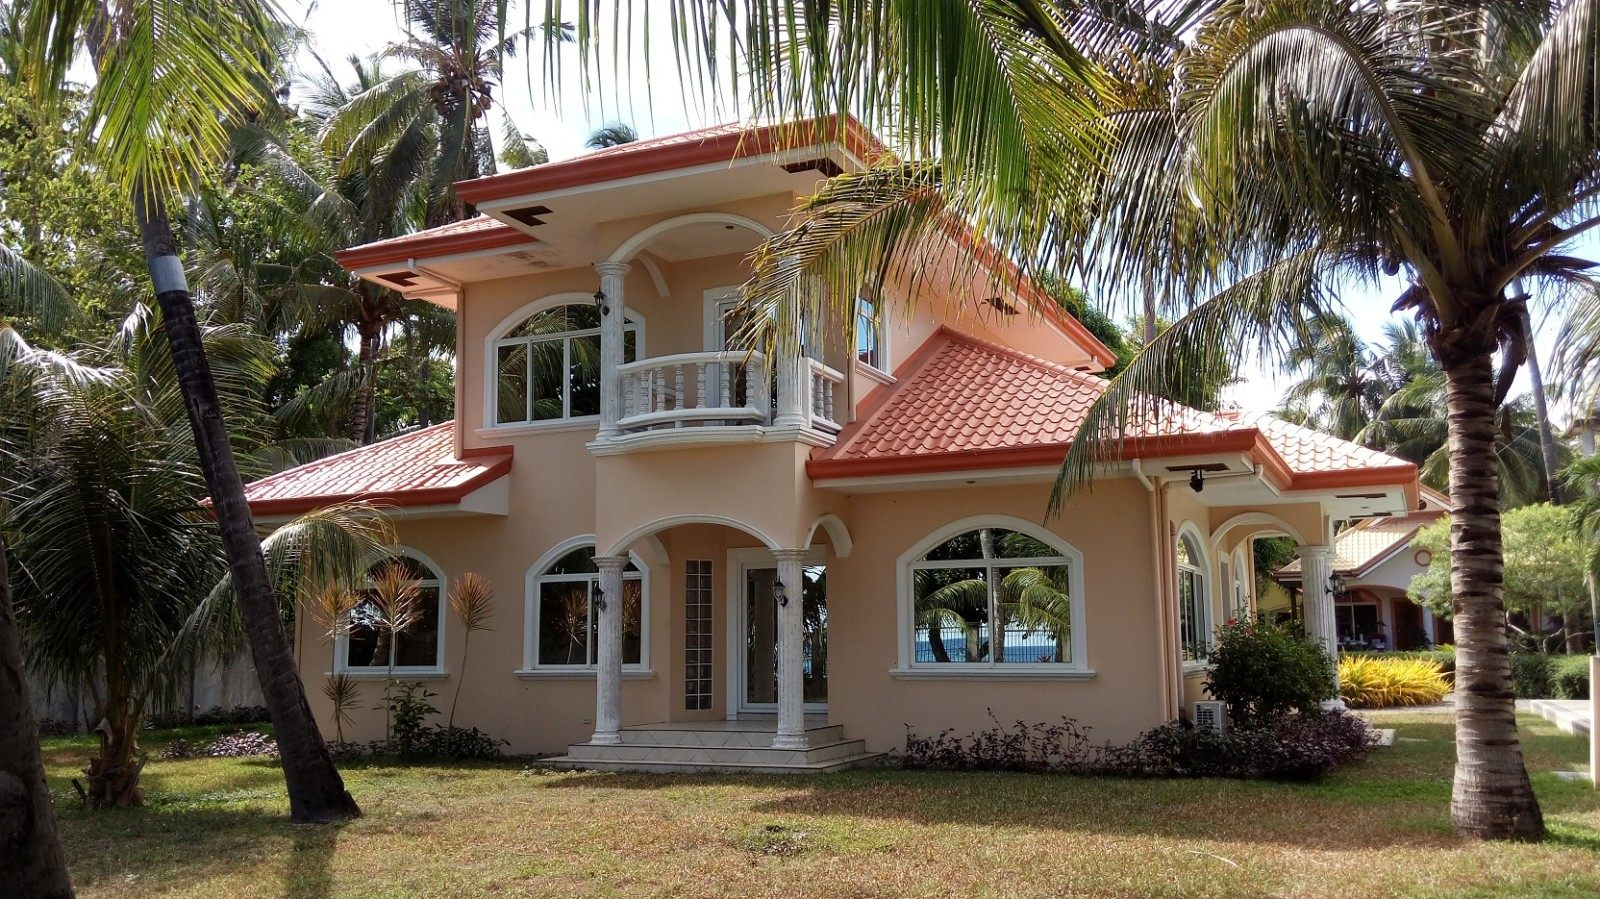 BEACHFRONT INVESTMENT PROPERTY FOR SALE IN ZAMBOANGUITA